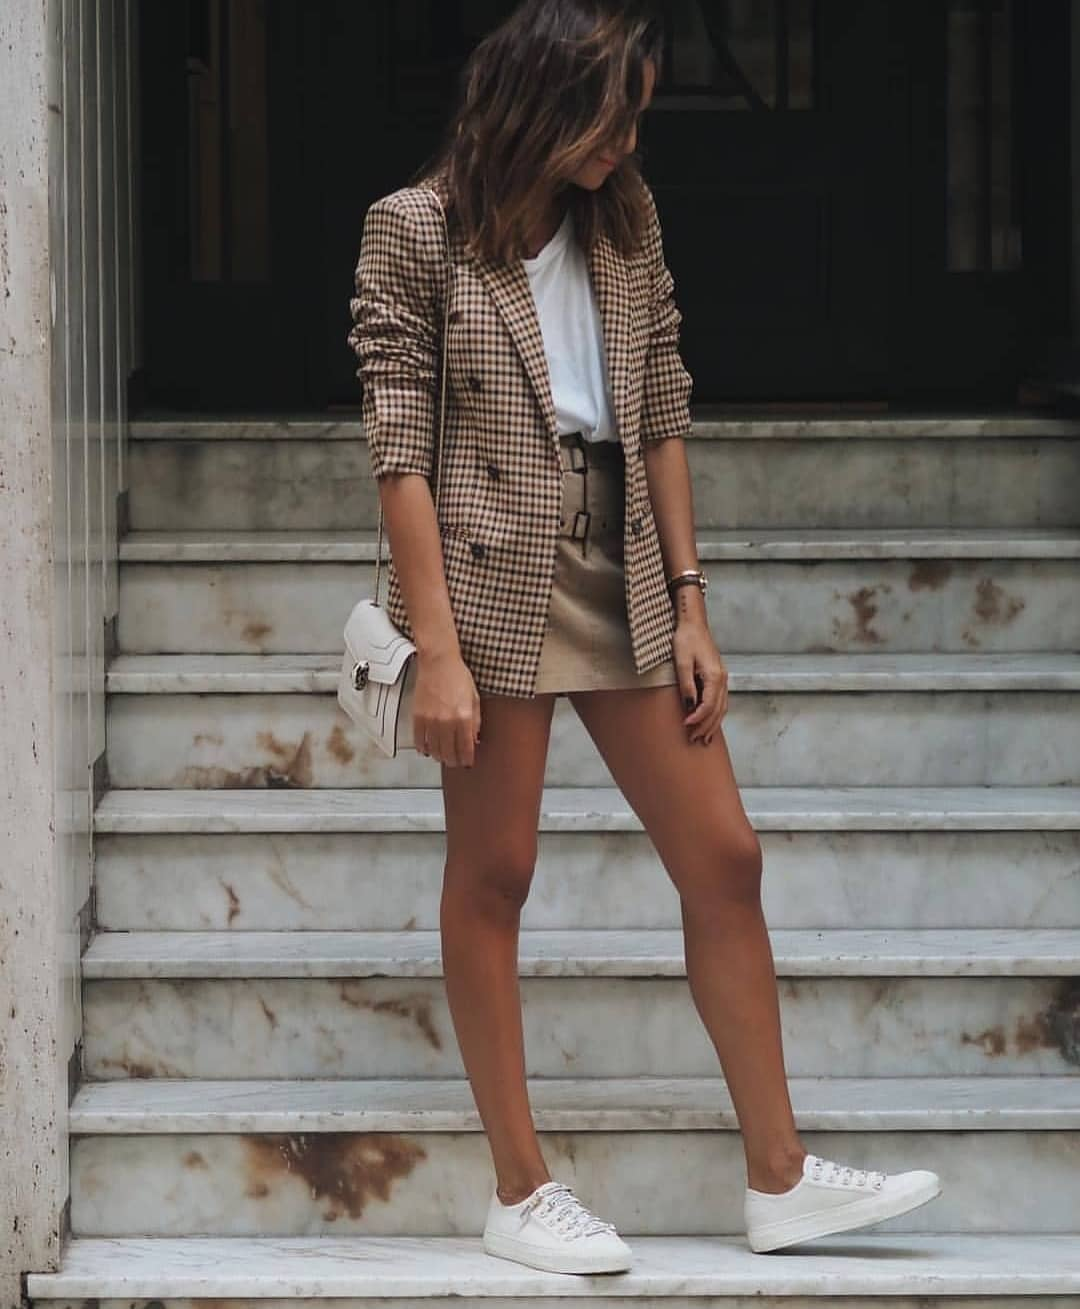 Plaid Blazer With White Tee, Beige Skirt And White Kicks For Spring 2019